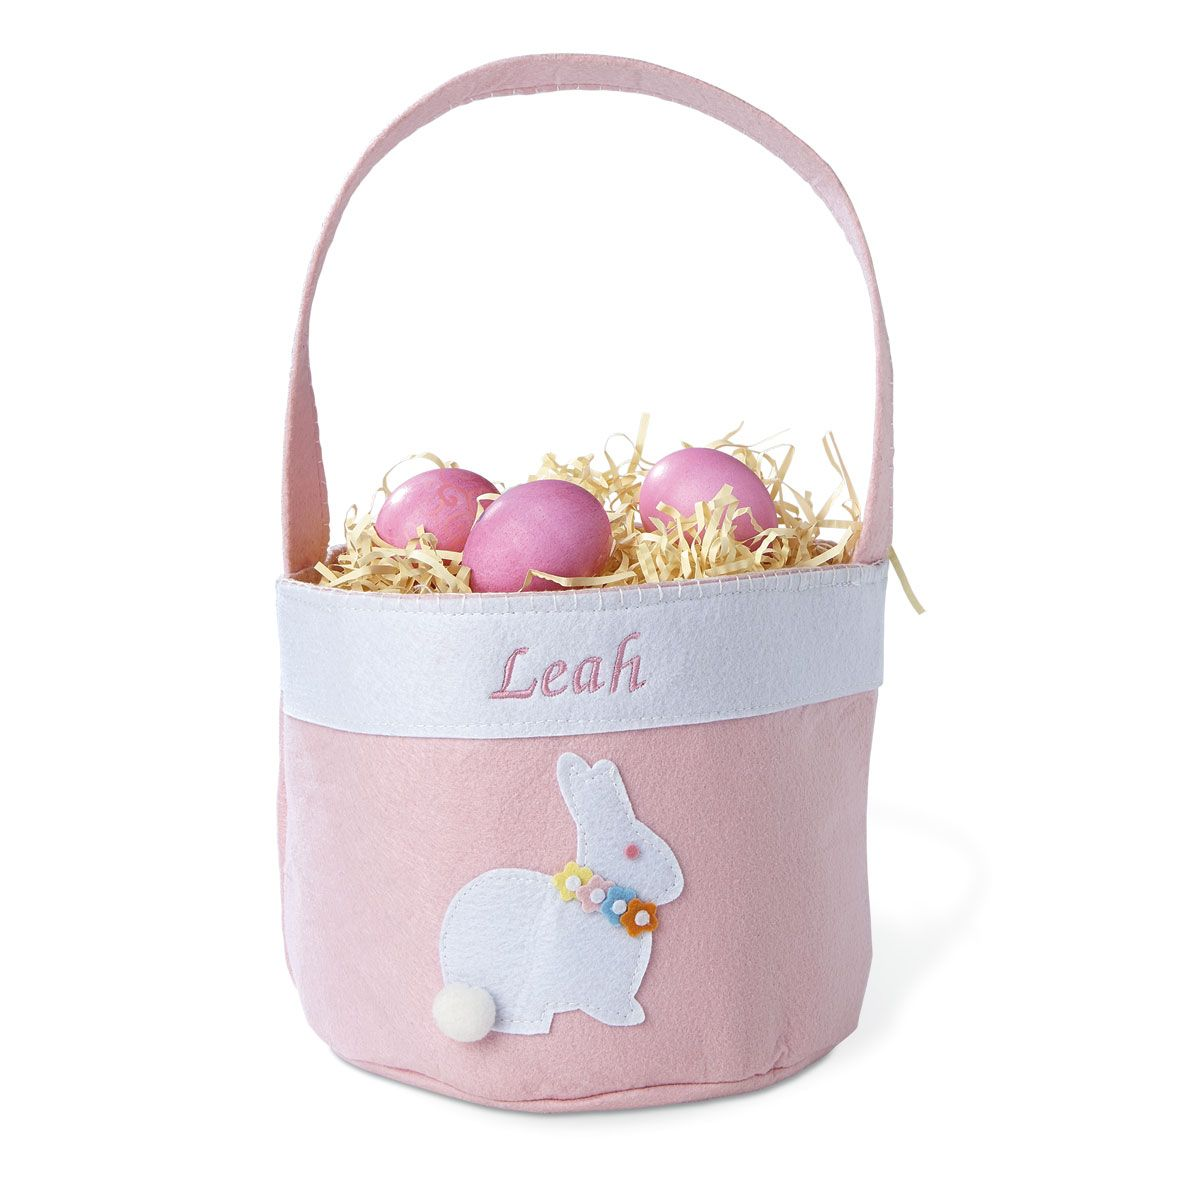 Personalized Bunny Basket-Pink-816471